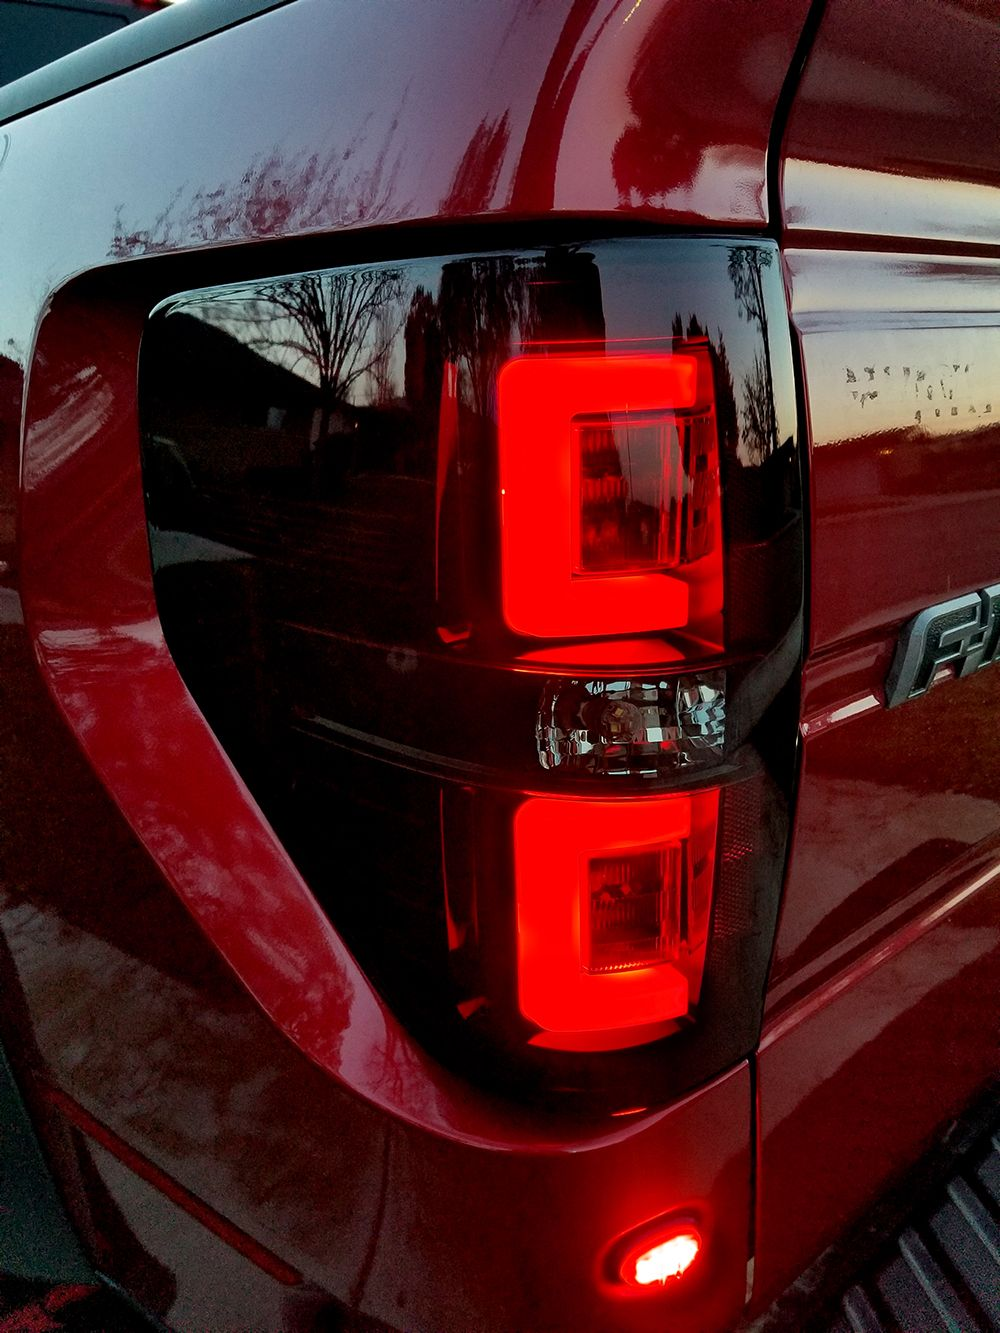 hight resolution of ford f150 raptor oled taillights truck car parts 264368rbk recon truck accessories